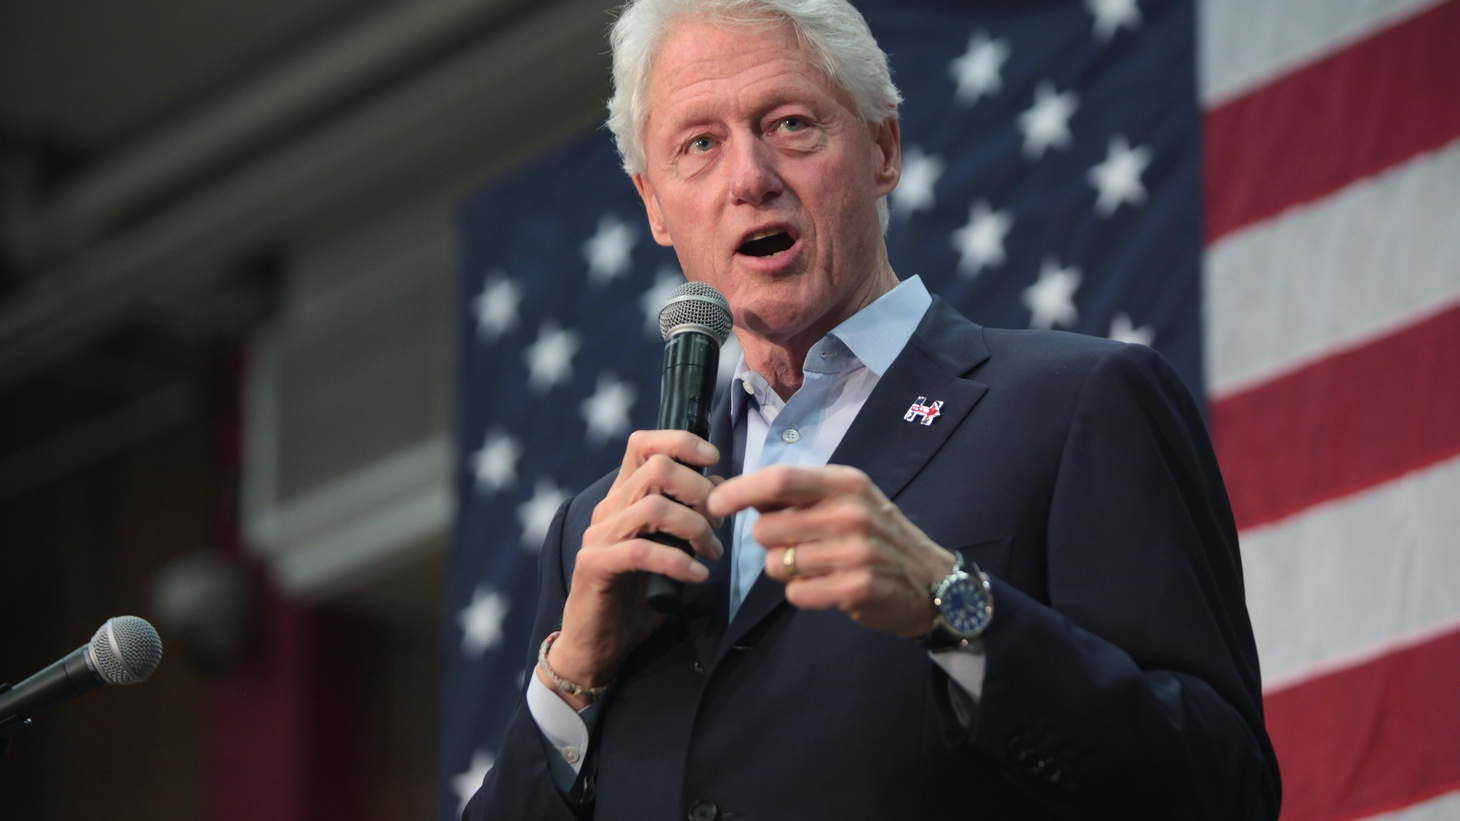 Bill Clinton has announced changes to The Clinton Foundation should Hillary be elected president. And former Trump campaign manager Paul Manafort is still facing questions about his pro-Russian ties.